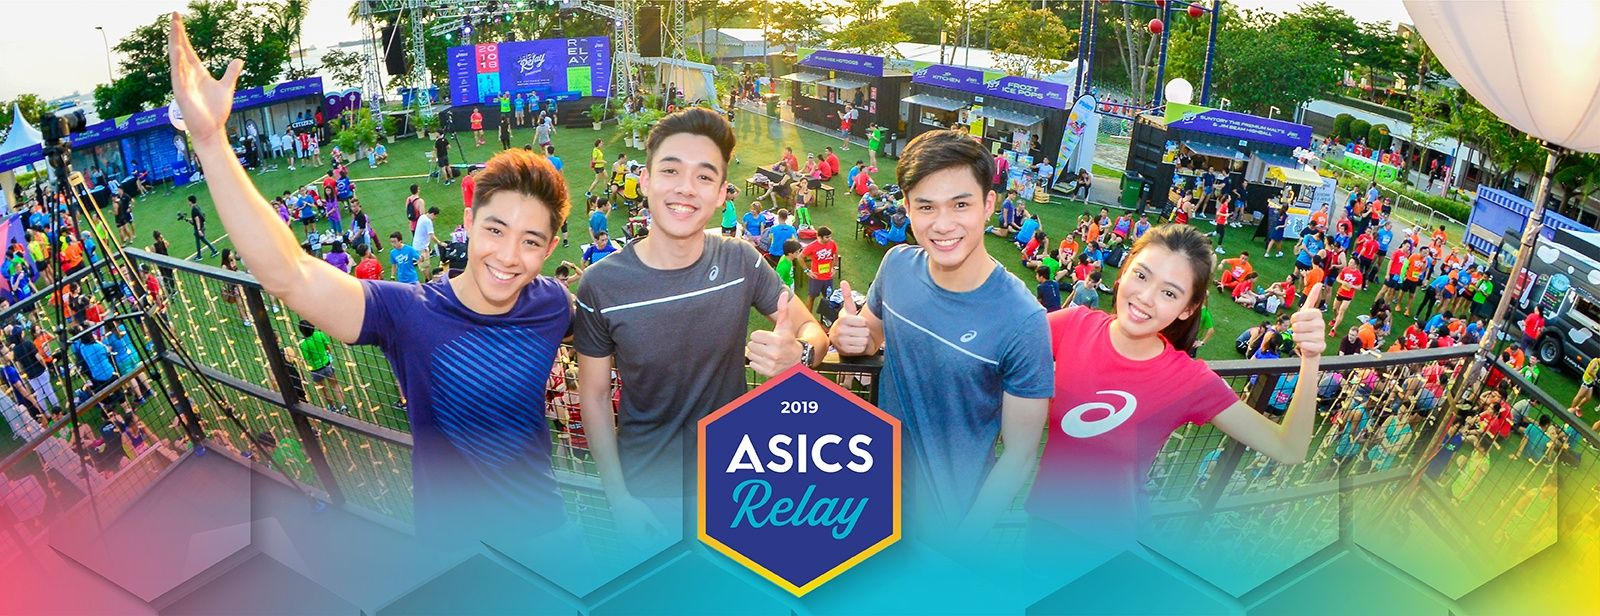 ASICS Relay_Website Subpage_26FEB_1C